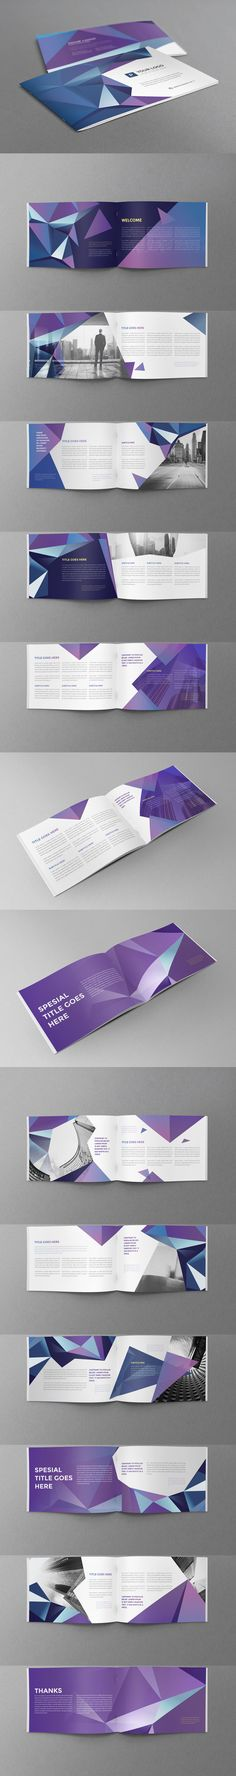 Cool Modern Brochure 32 Pages A5 Horizontal Template InDesign INDD